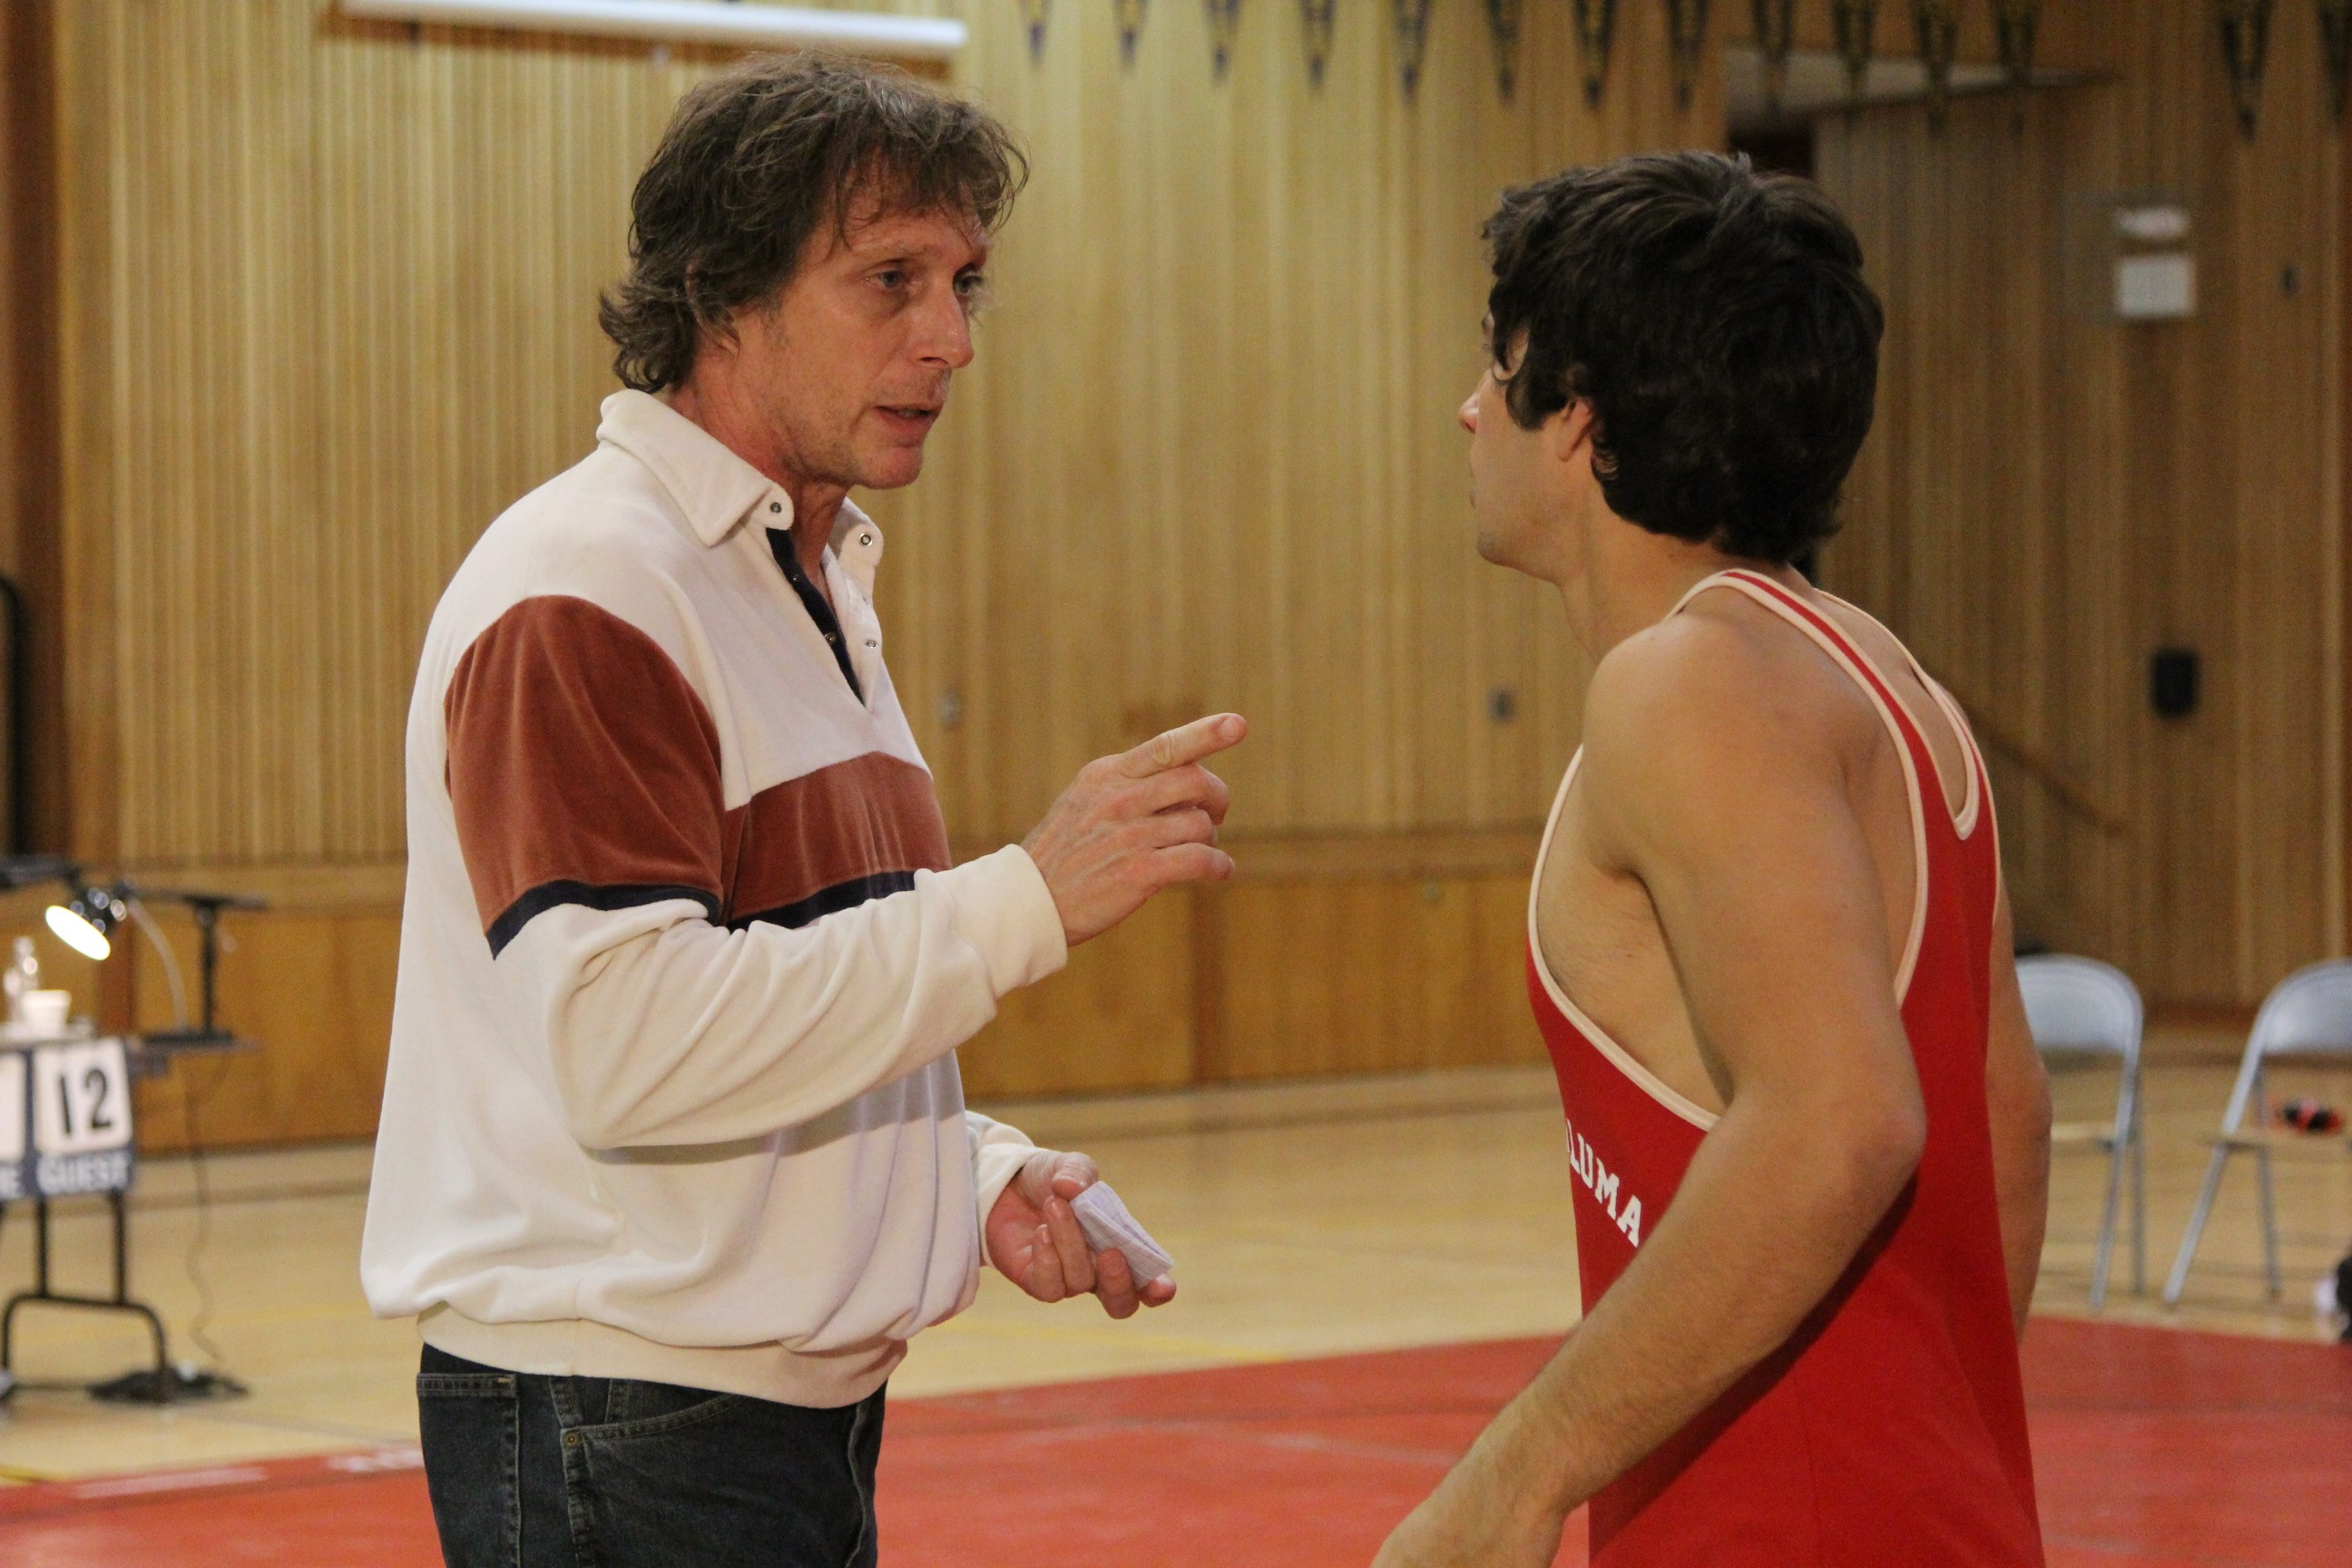 Fathom Events Brings 'American Wrestler: The Wizard' To Cinemas On May 3